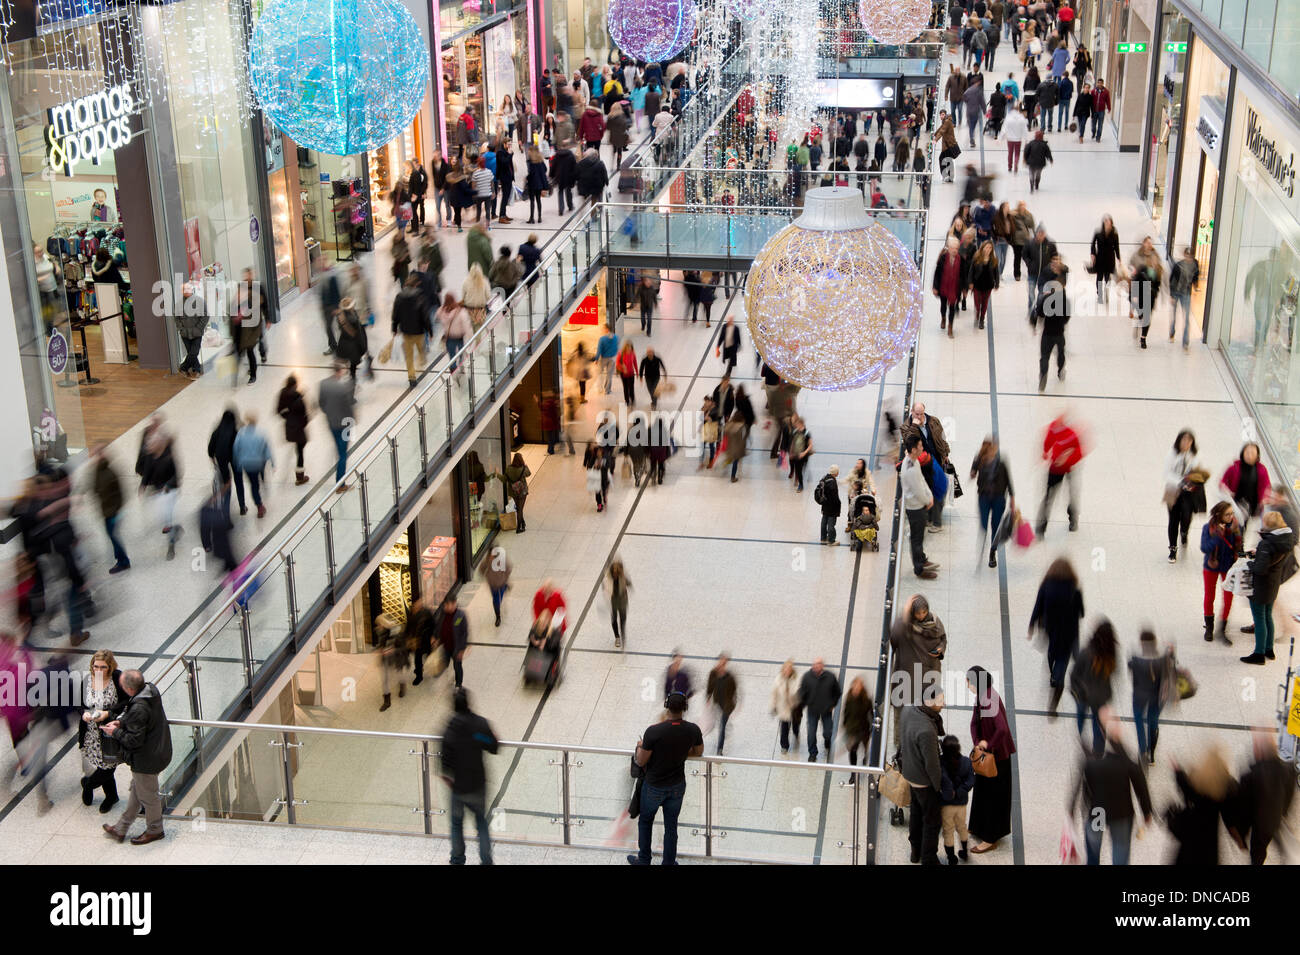 Manchester, UK. 22nd December, 2013. An internal shot of Manchester Arndale shopping centre during the Christmas lead up period. Over 210 stores are located within the bustling shopping complex. Credit:  Russell Hart/Alamy Live News - Stock Image